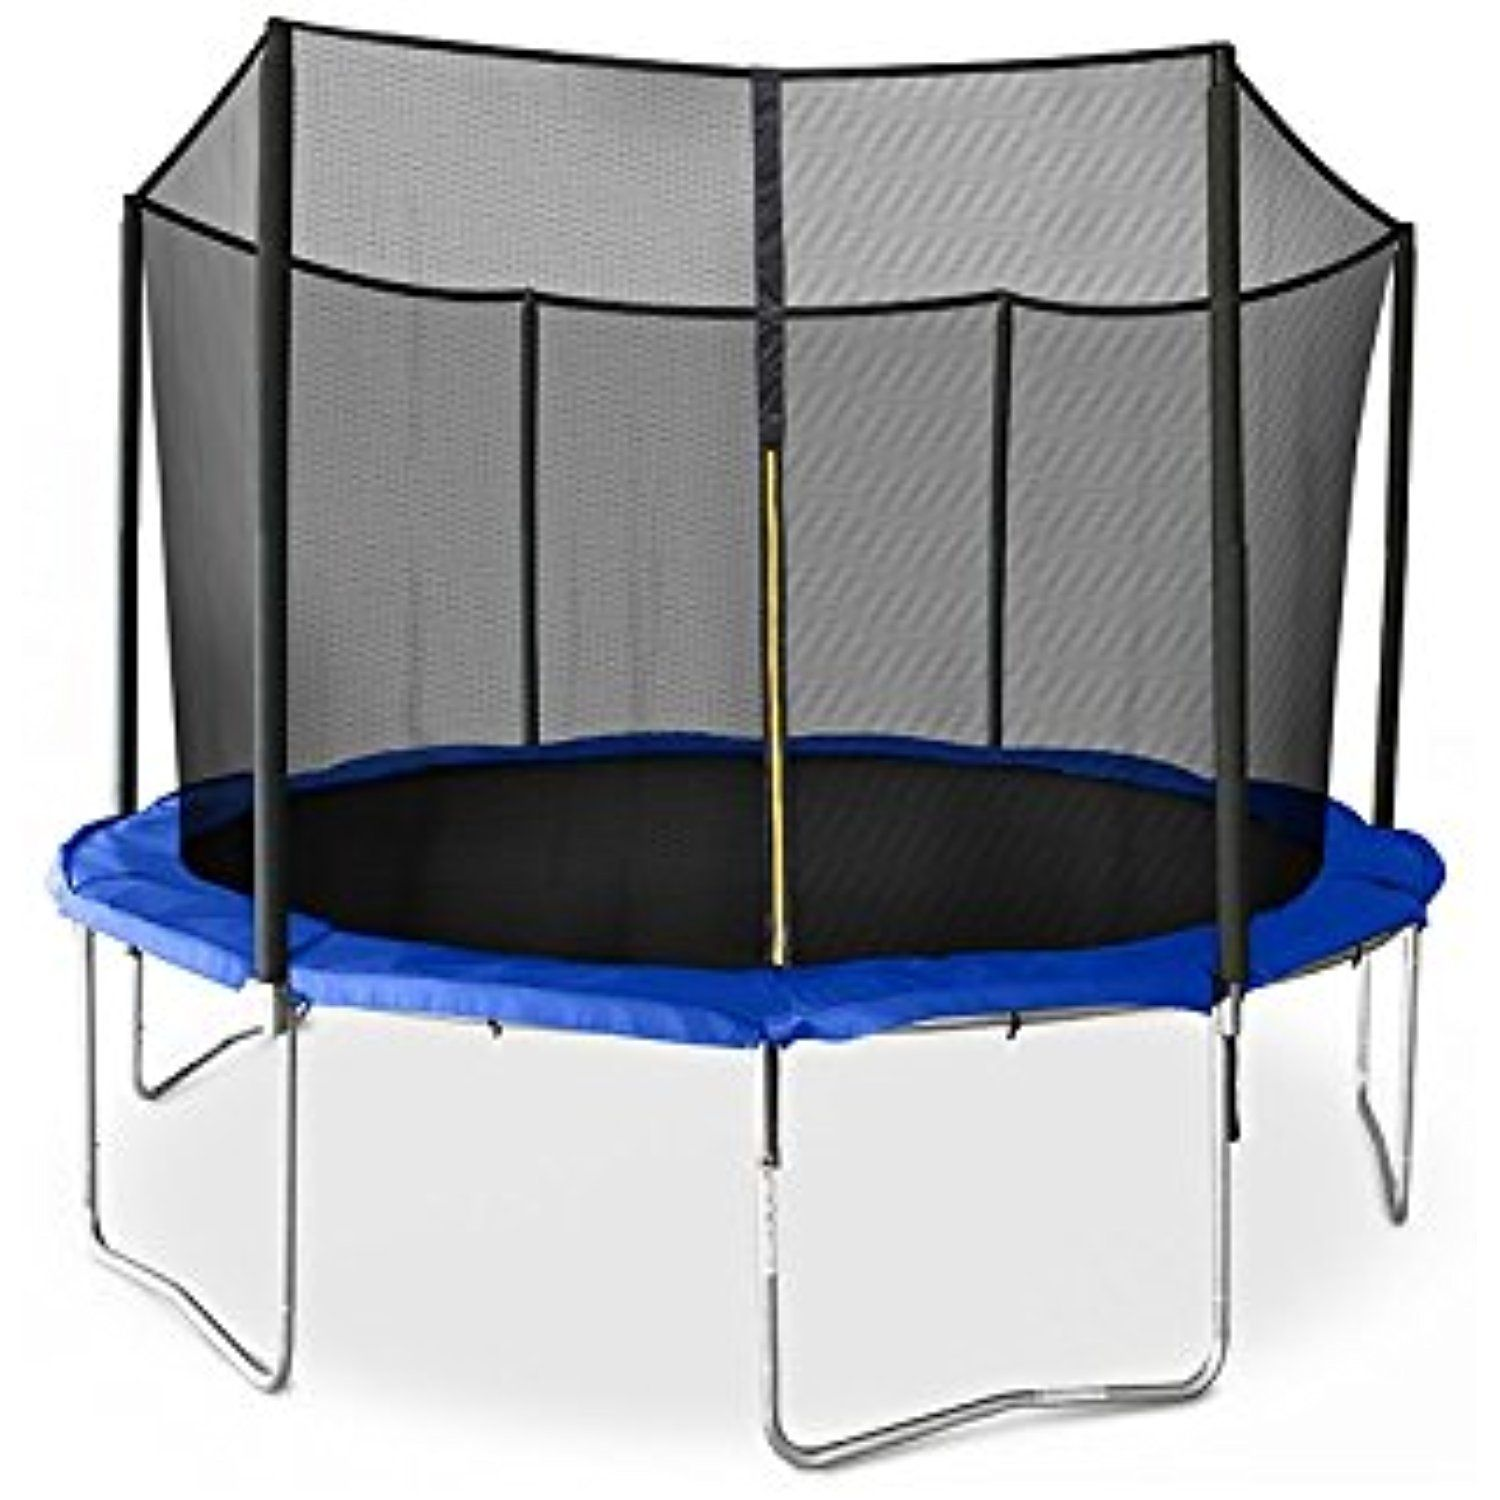 JumpSport SkyBounce Trampoline with Safety Enclosure